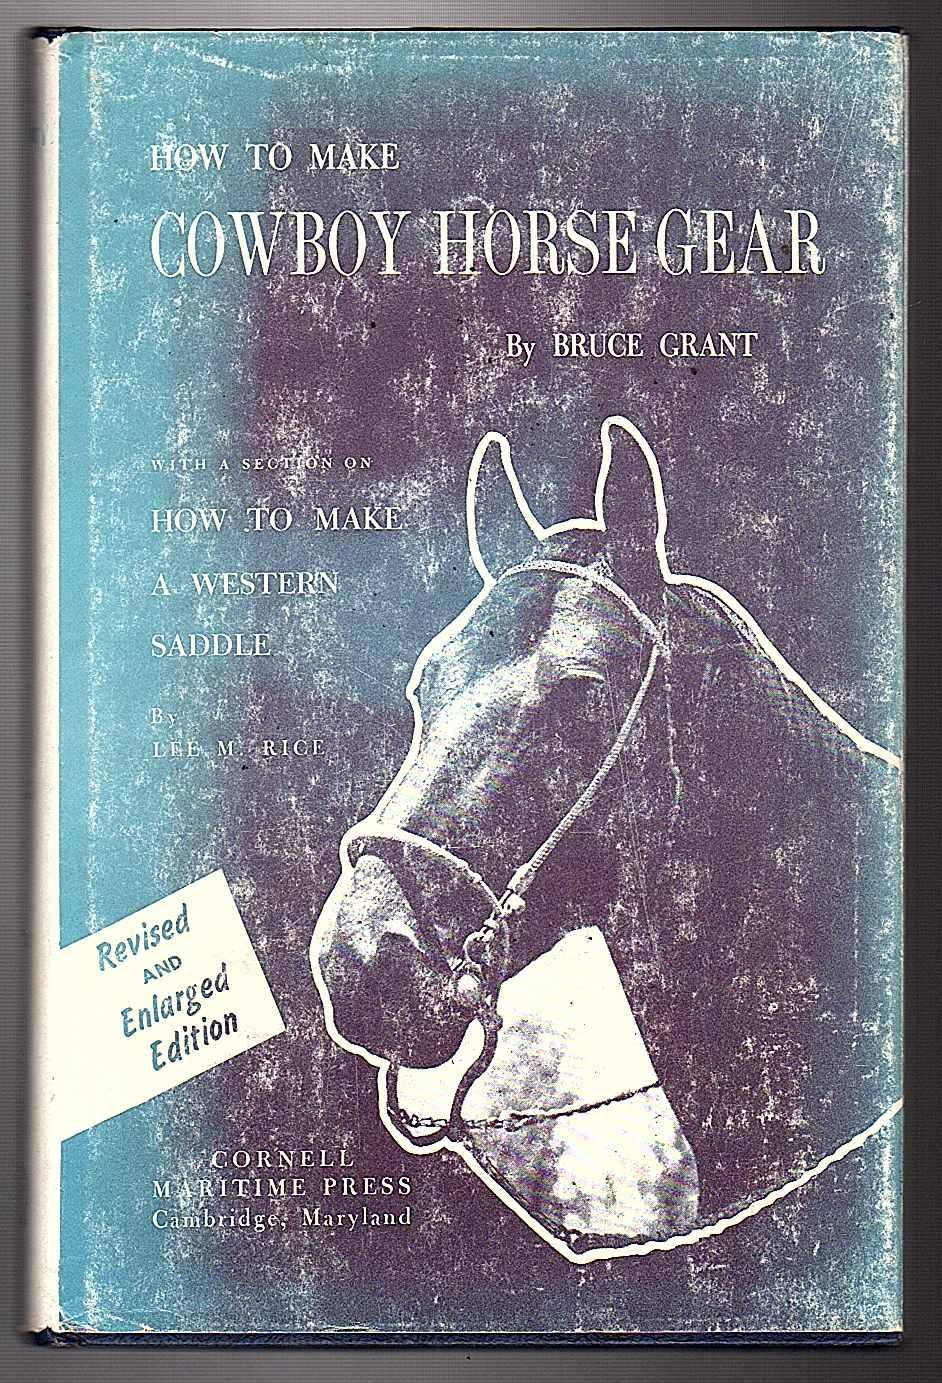 How To Make Cowboy Horse Gear With A Section On How To Make A Western Saddle By Lee M Rice By Bruce Grant Very Good Hardcover 1956 Malfies